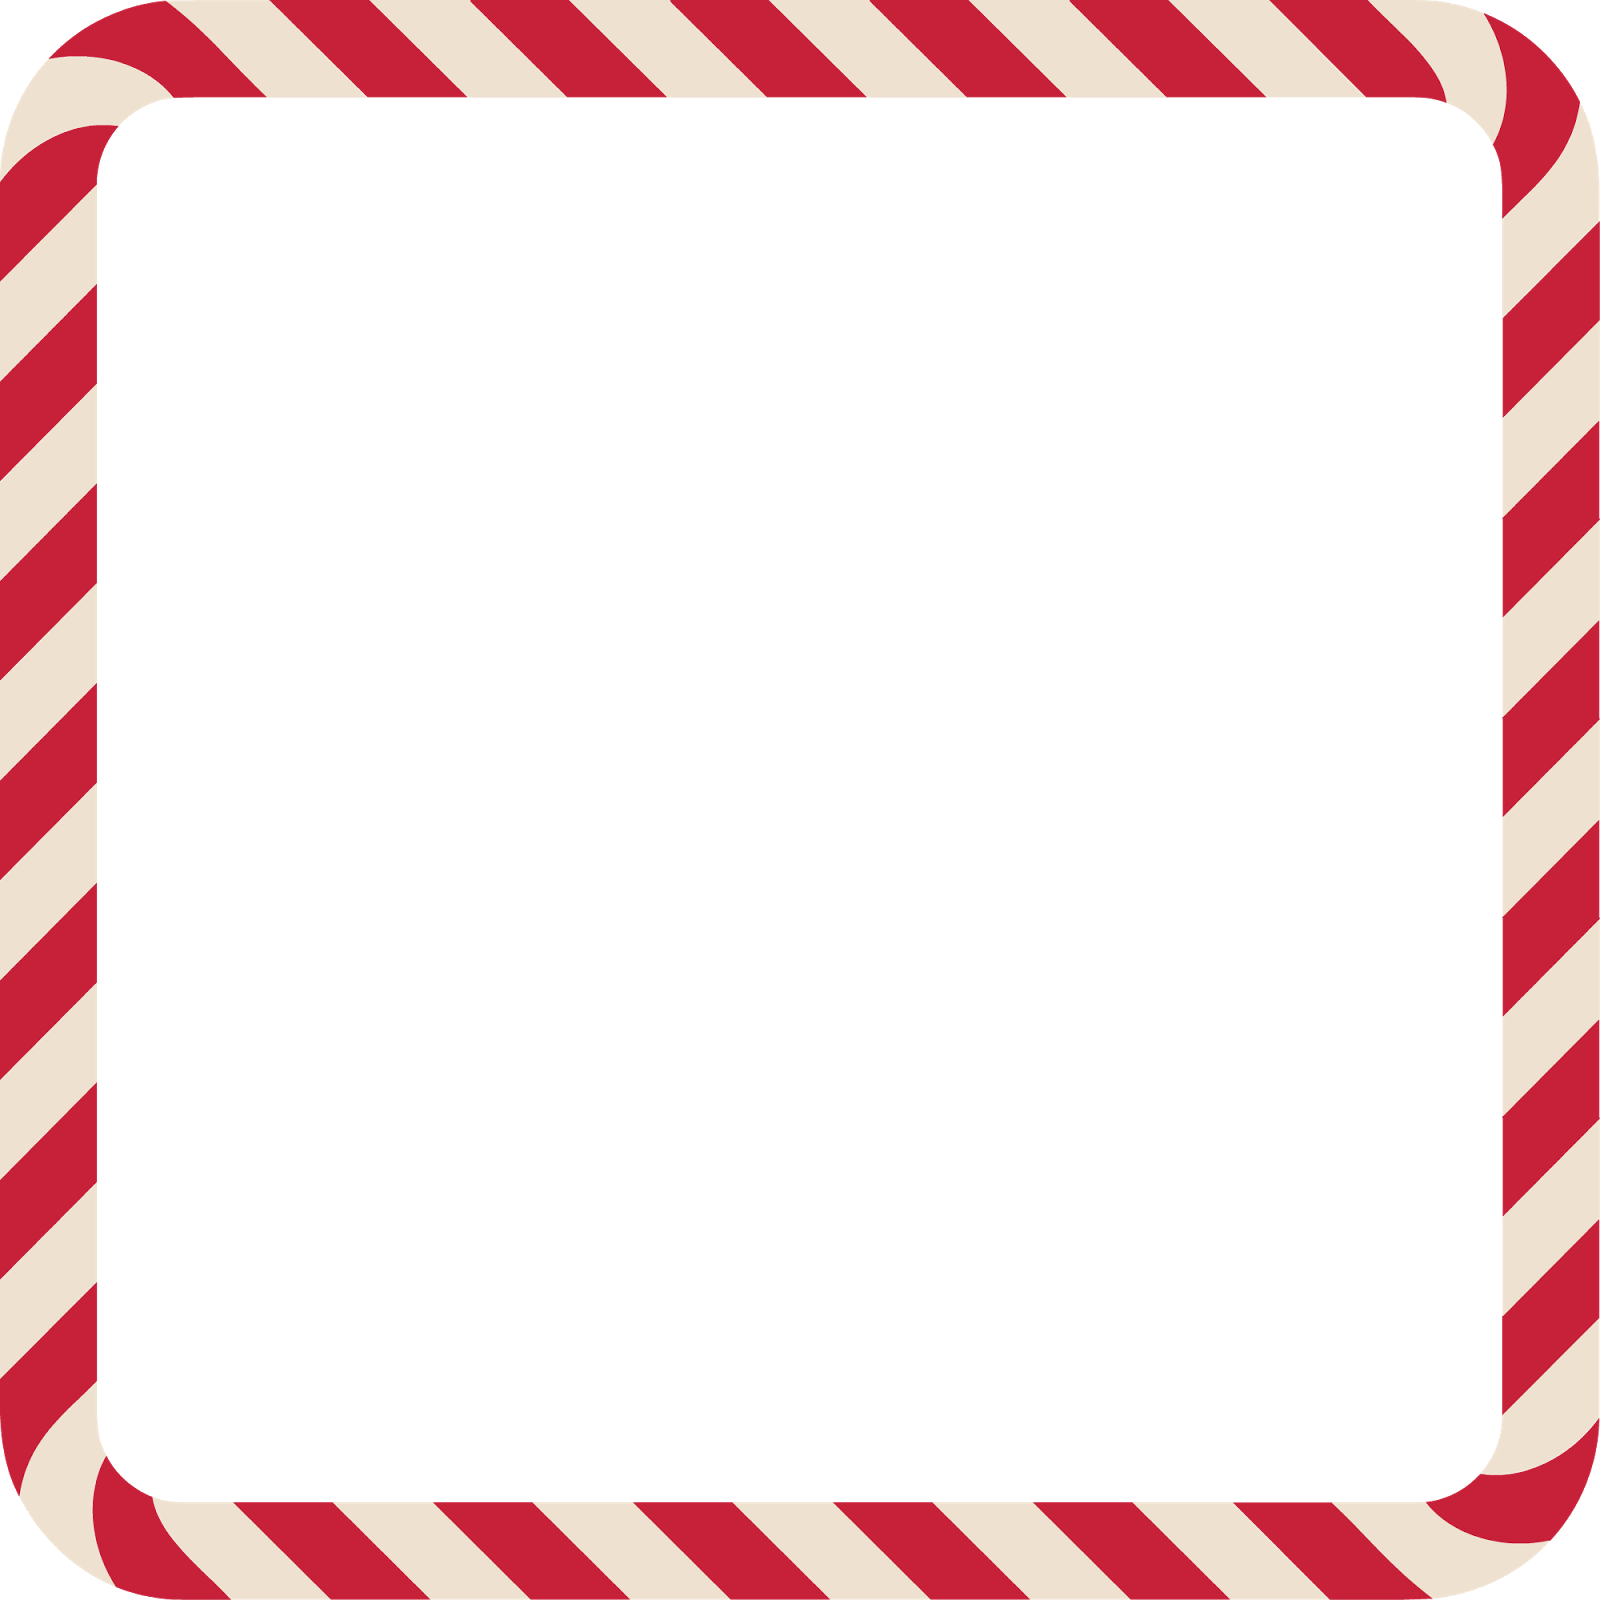 Wonderland In A Wardrobe Candy Cane Frames Freebies Christmas Candy Candy Cane Clip Art